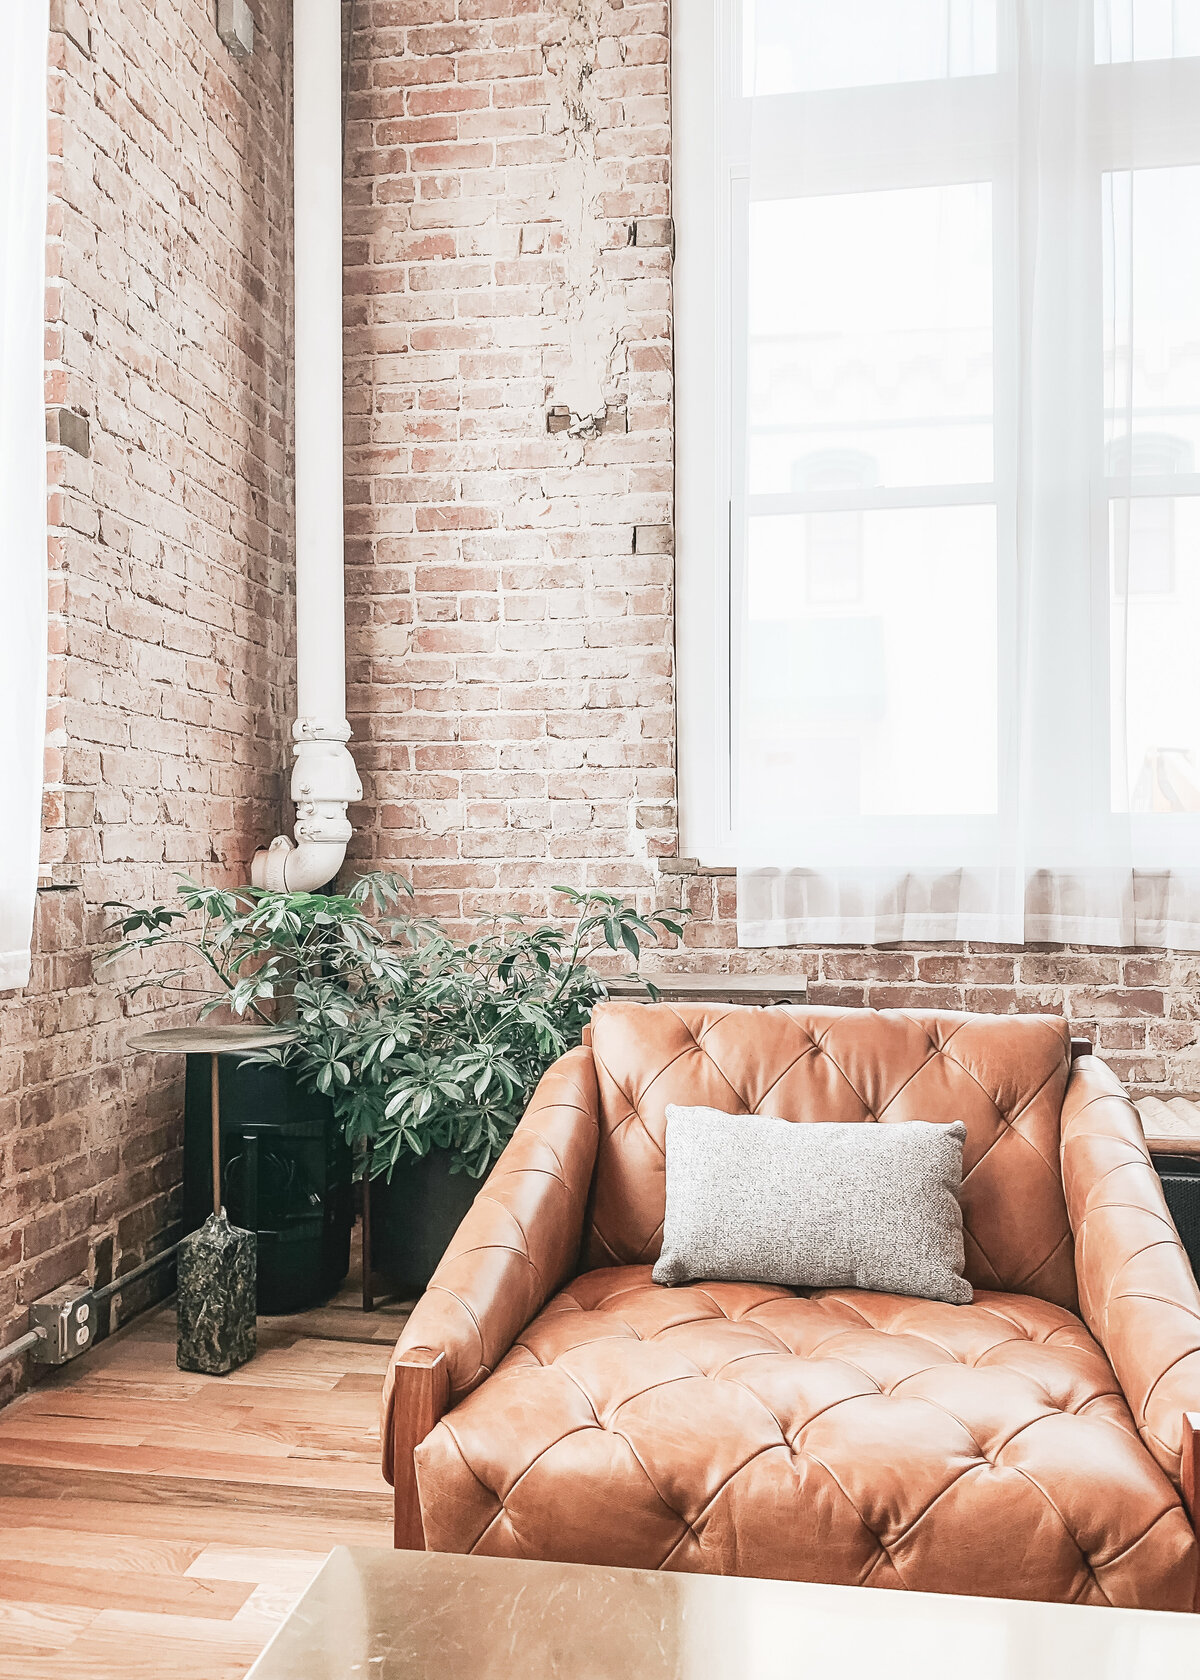 A leather chair sits against a brick wall in a light interior with a plant behind.